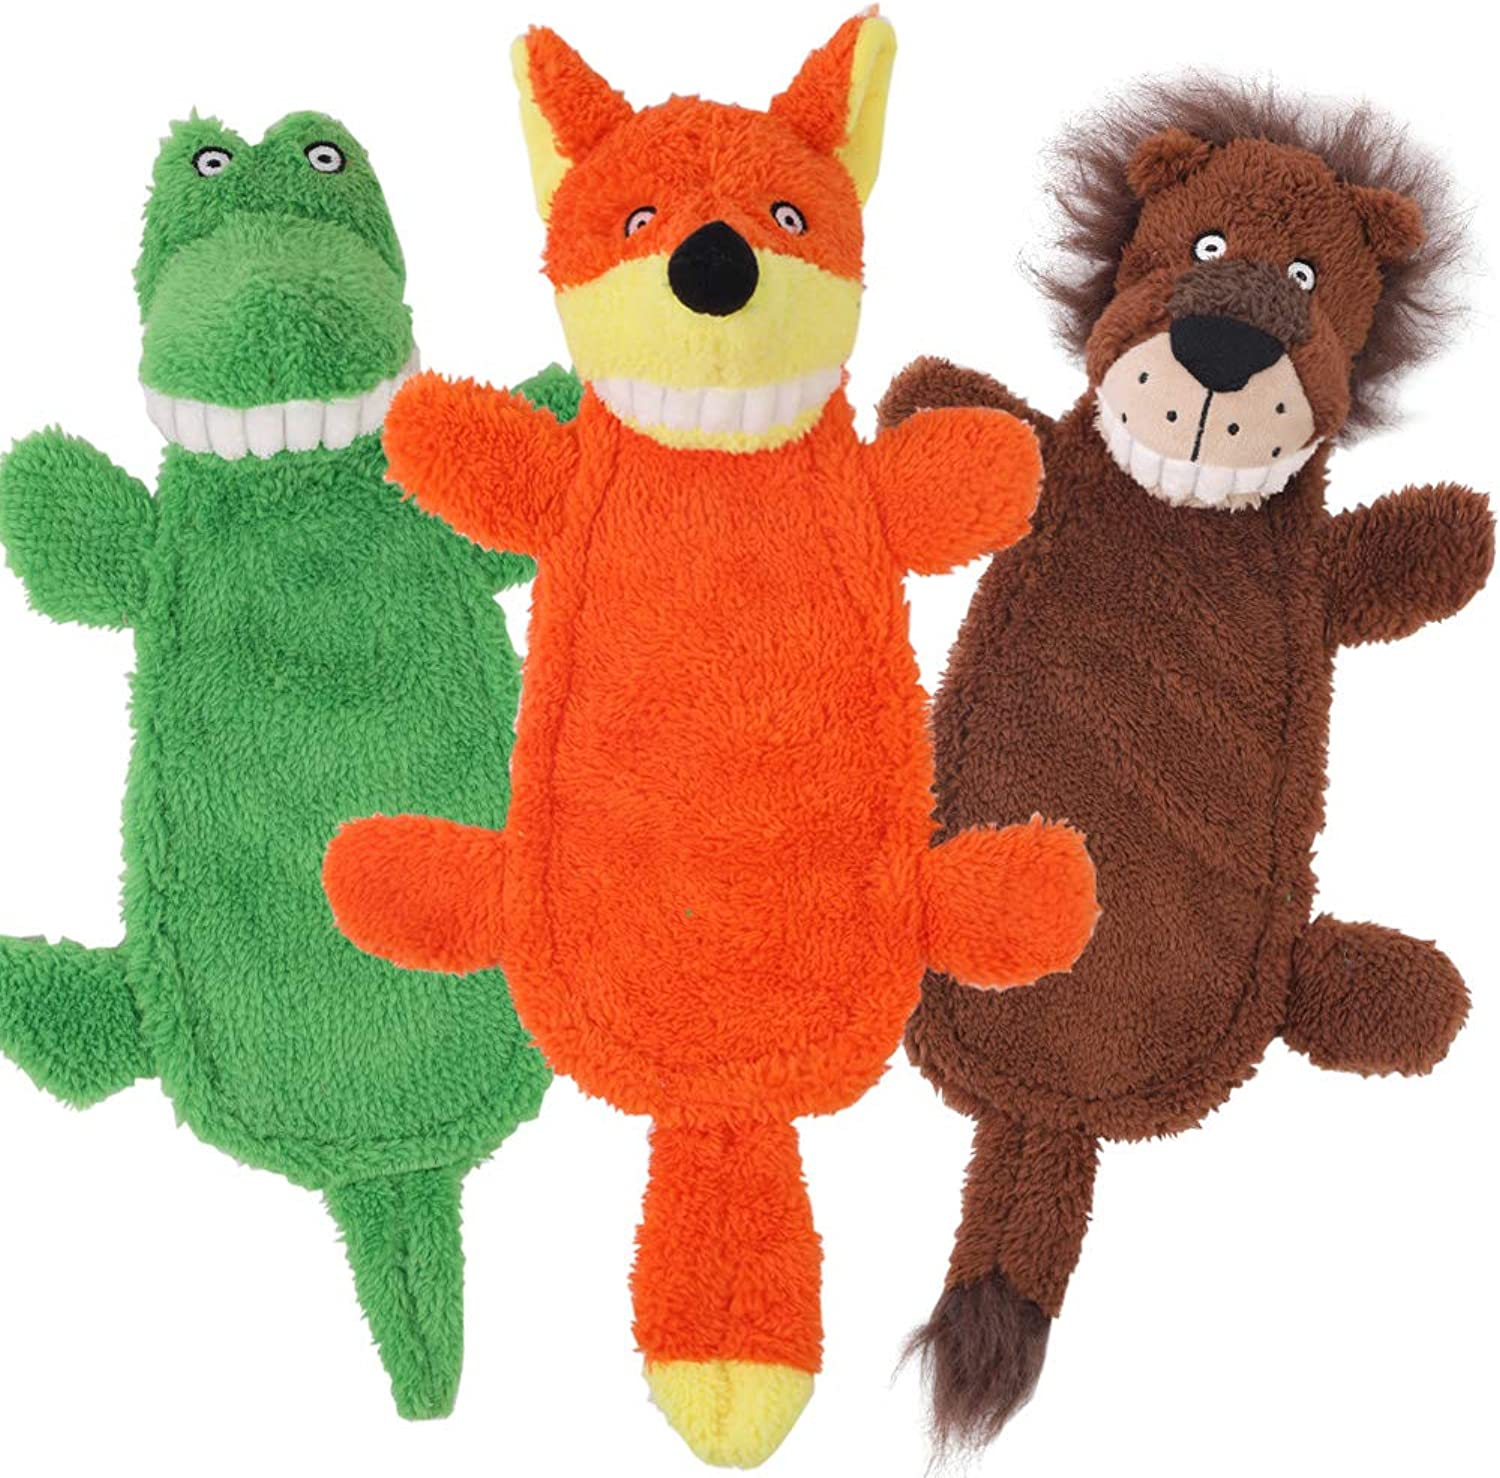 CNMGBB Crinkle Dog Toy No Stuffing Squeaky Plush Dog Toy Durable Stuffingless Cute Dog Chew Toy Set with Fox Lion and Crocodile for Small Medium and Large Dogs 16 inch 3 Pack Pet Toys